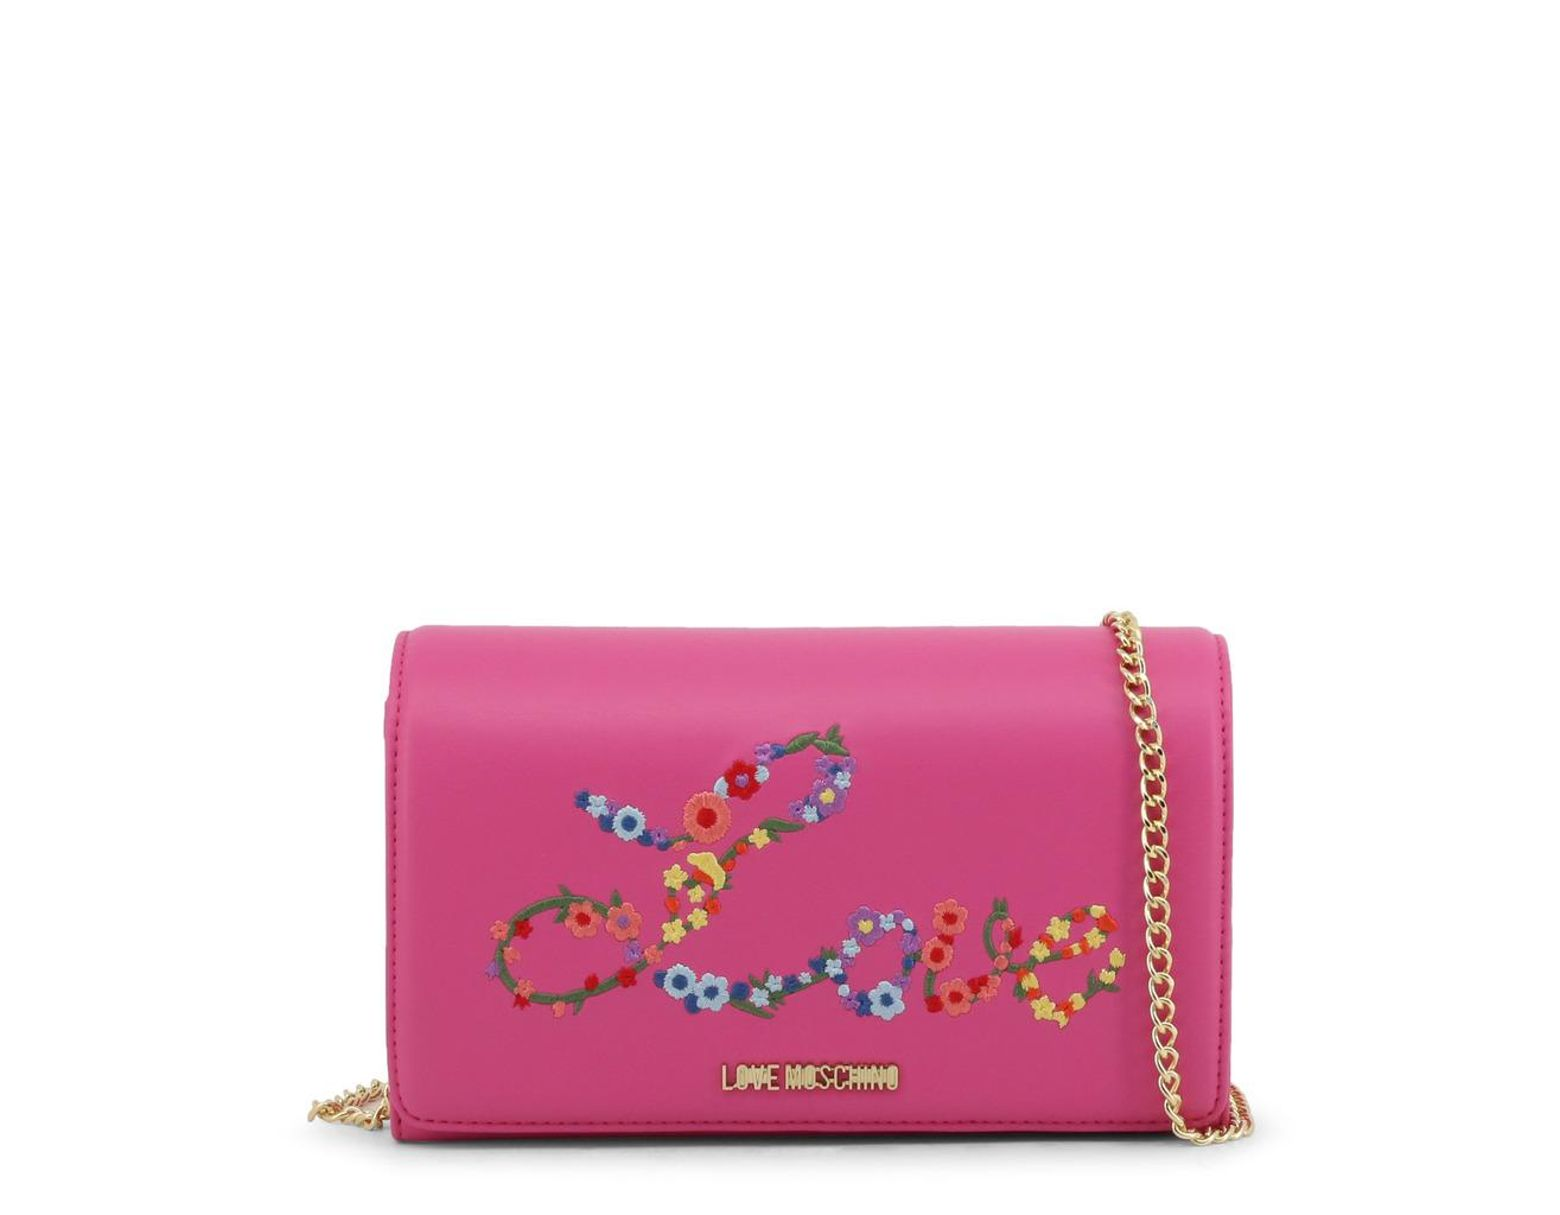 2f64ceaa59e Moschino Love Pink Faux Leather Embroidered Woc Crossbody Bag in Pink - Lyst